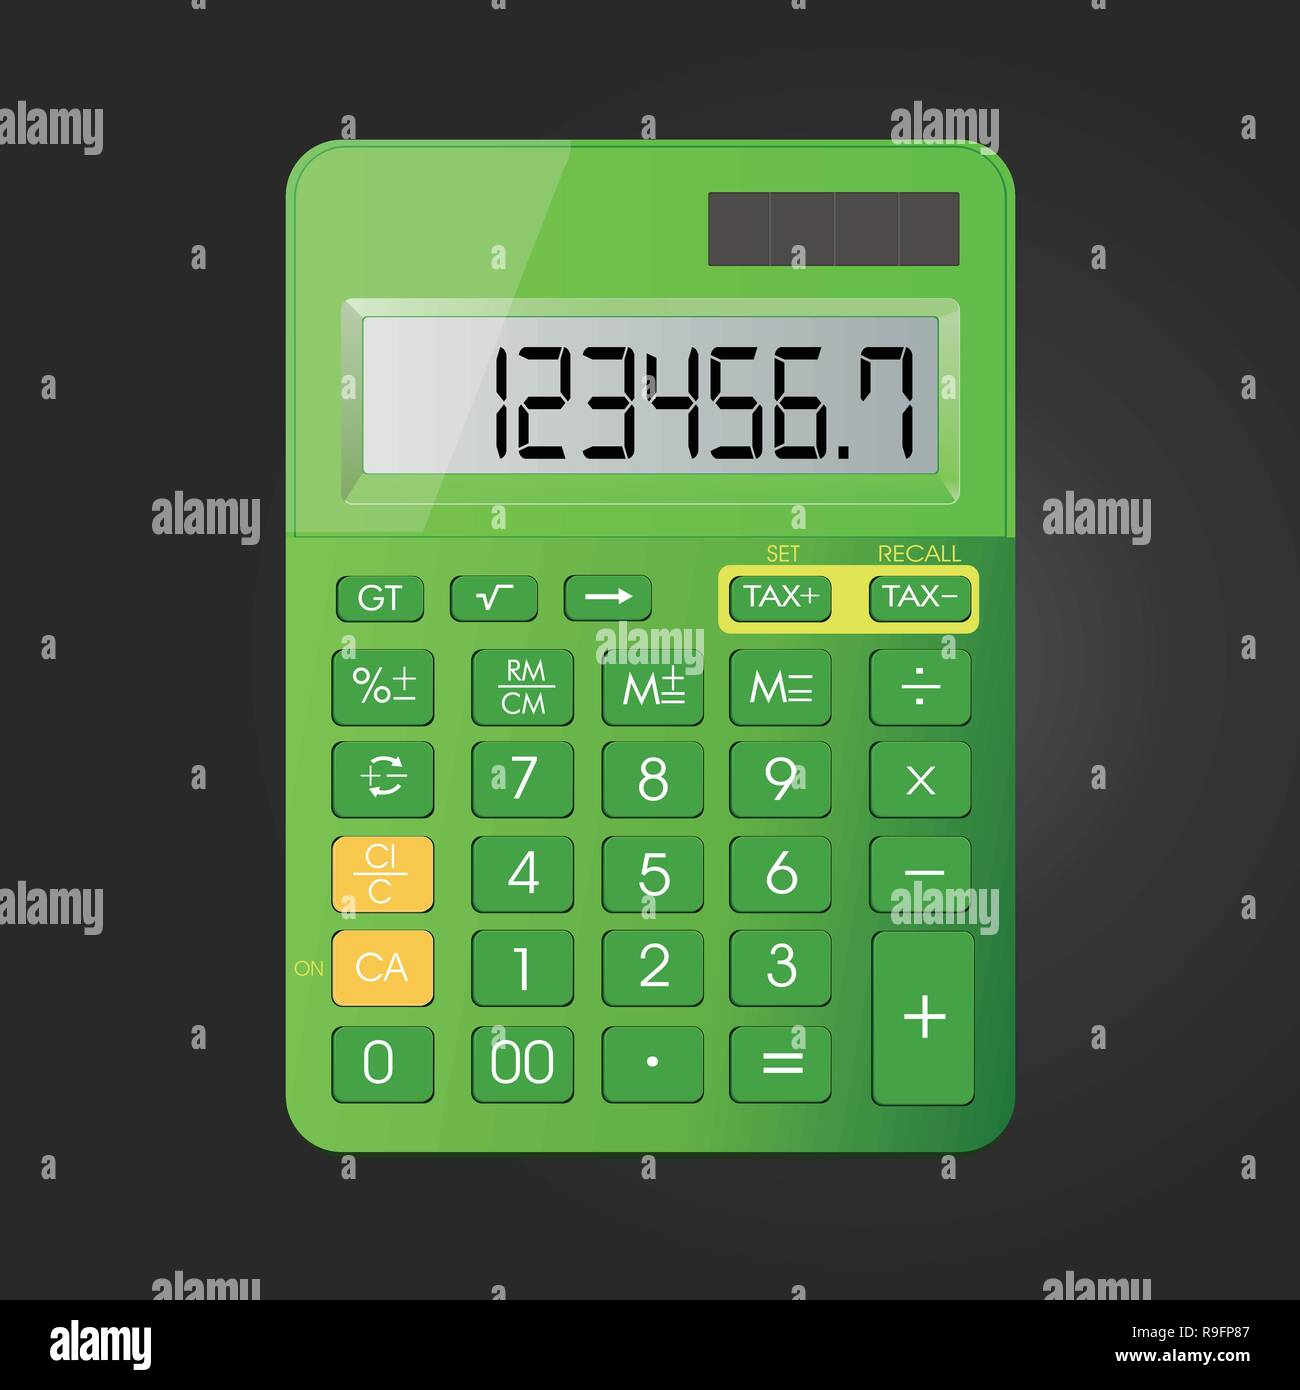 Realistic calculator vector icon isolated on black background, vector illustration. Stock Vector